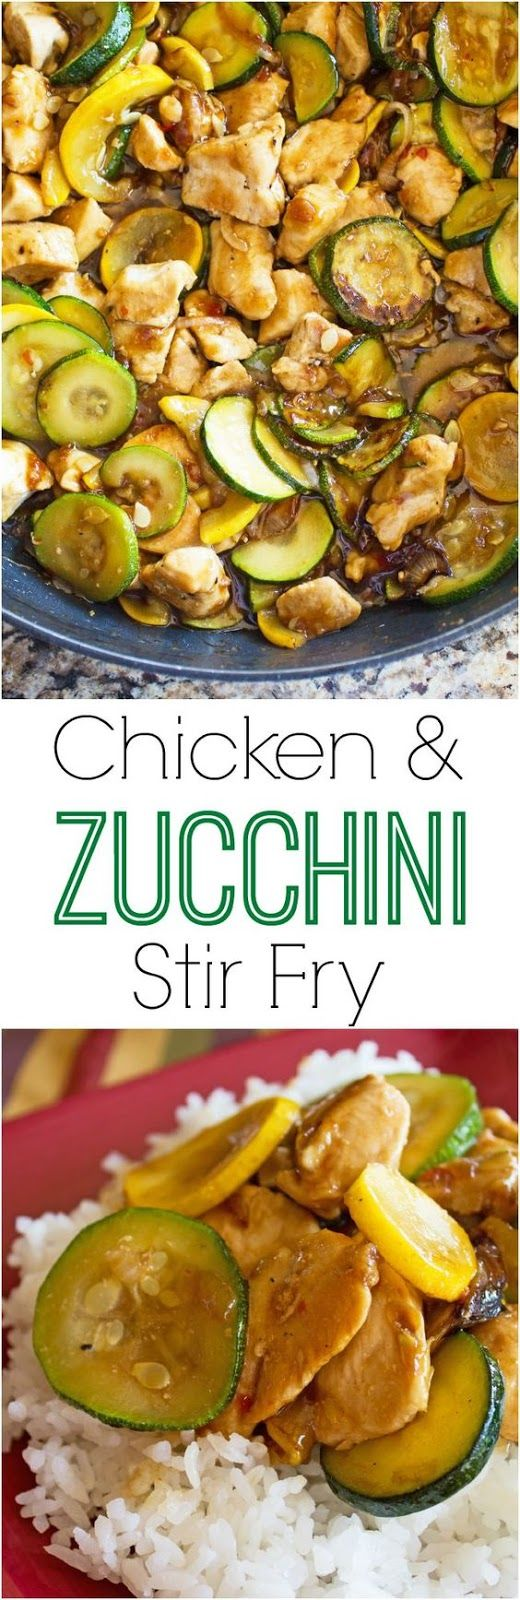 Ingredients     STIR FRY:   3 chicken breasts   4 Tb olive oil   salt and pepper   2 small zucchini   2 small yellow summer squash   1 ...